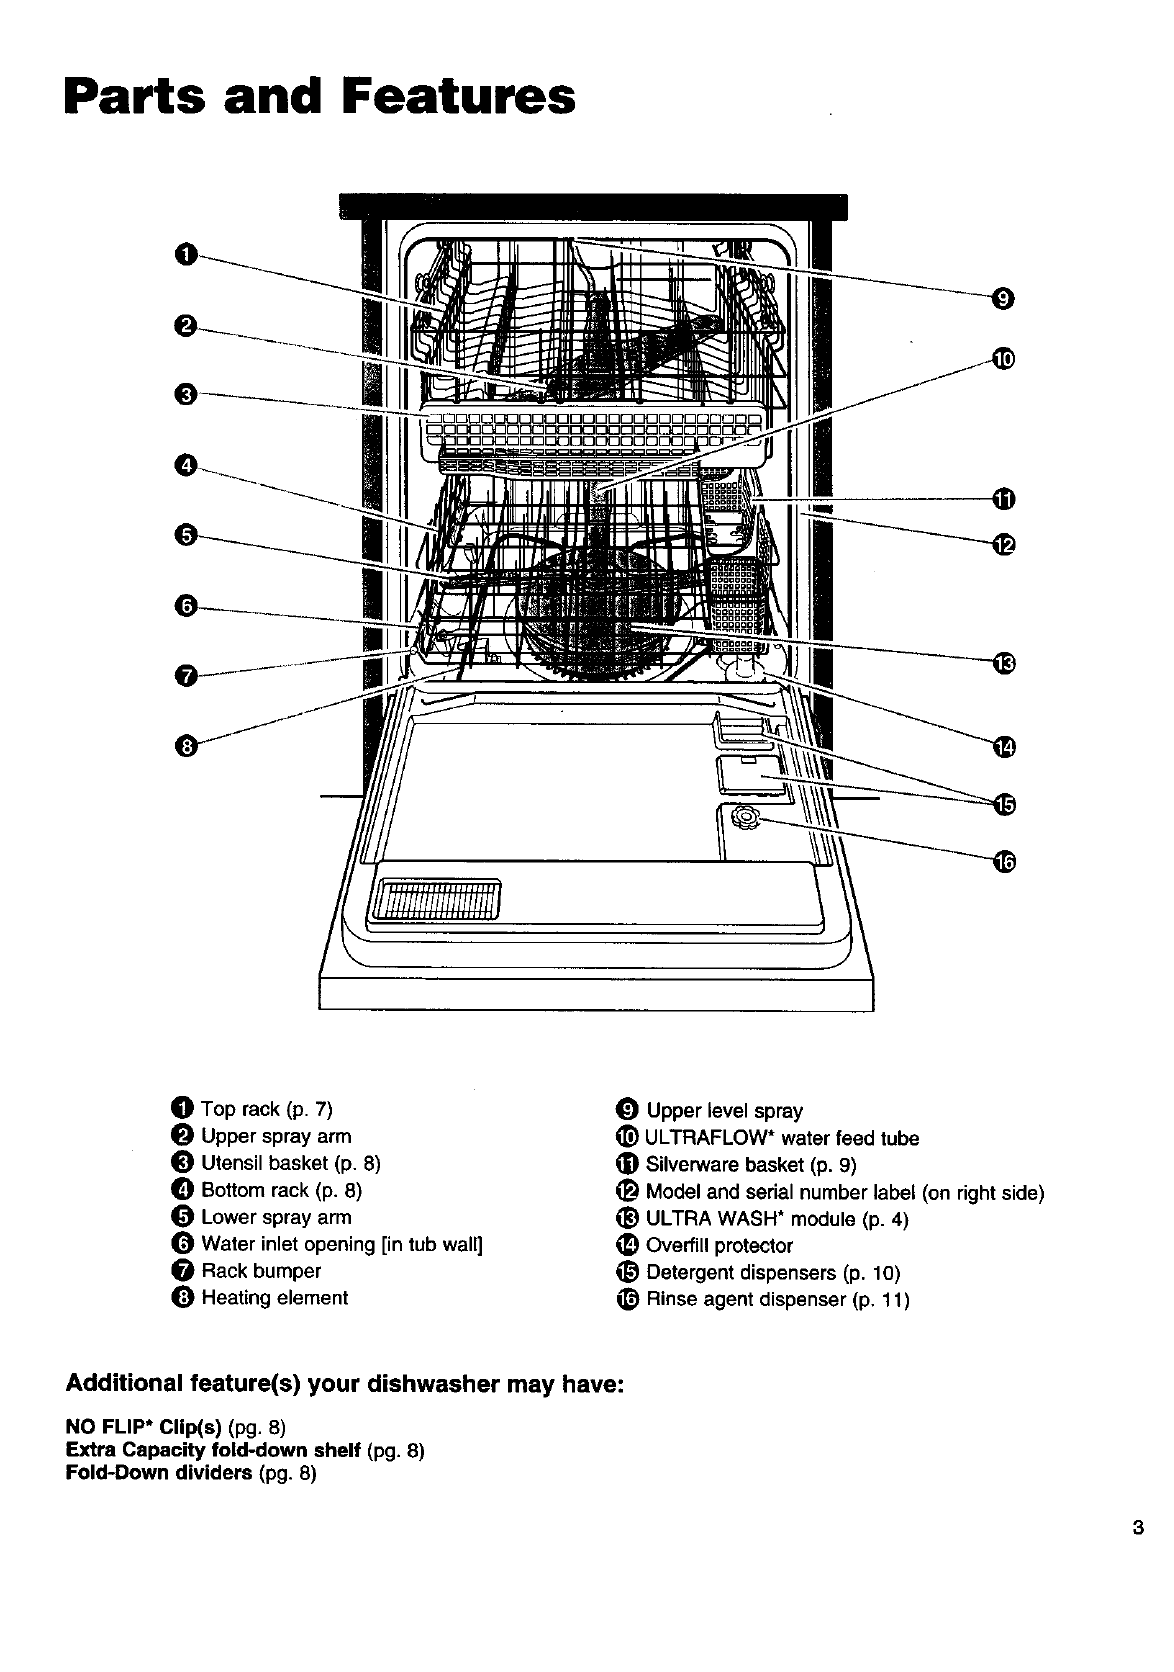 Kenmore Ultra Wash Dishwasher Parts Manual on kenmore dishwasher disassembly